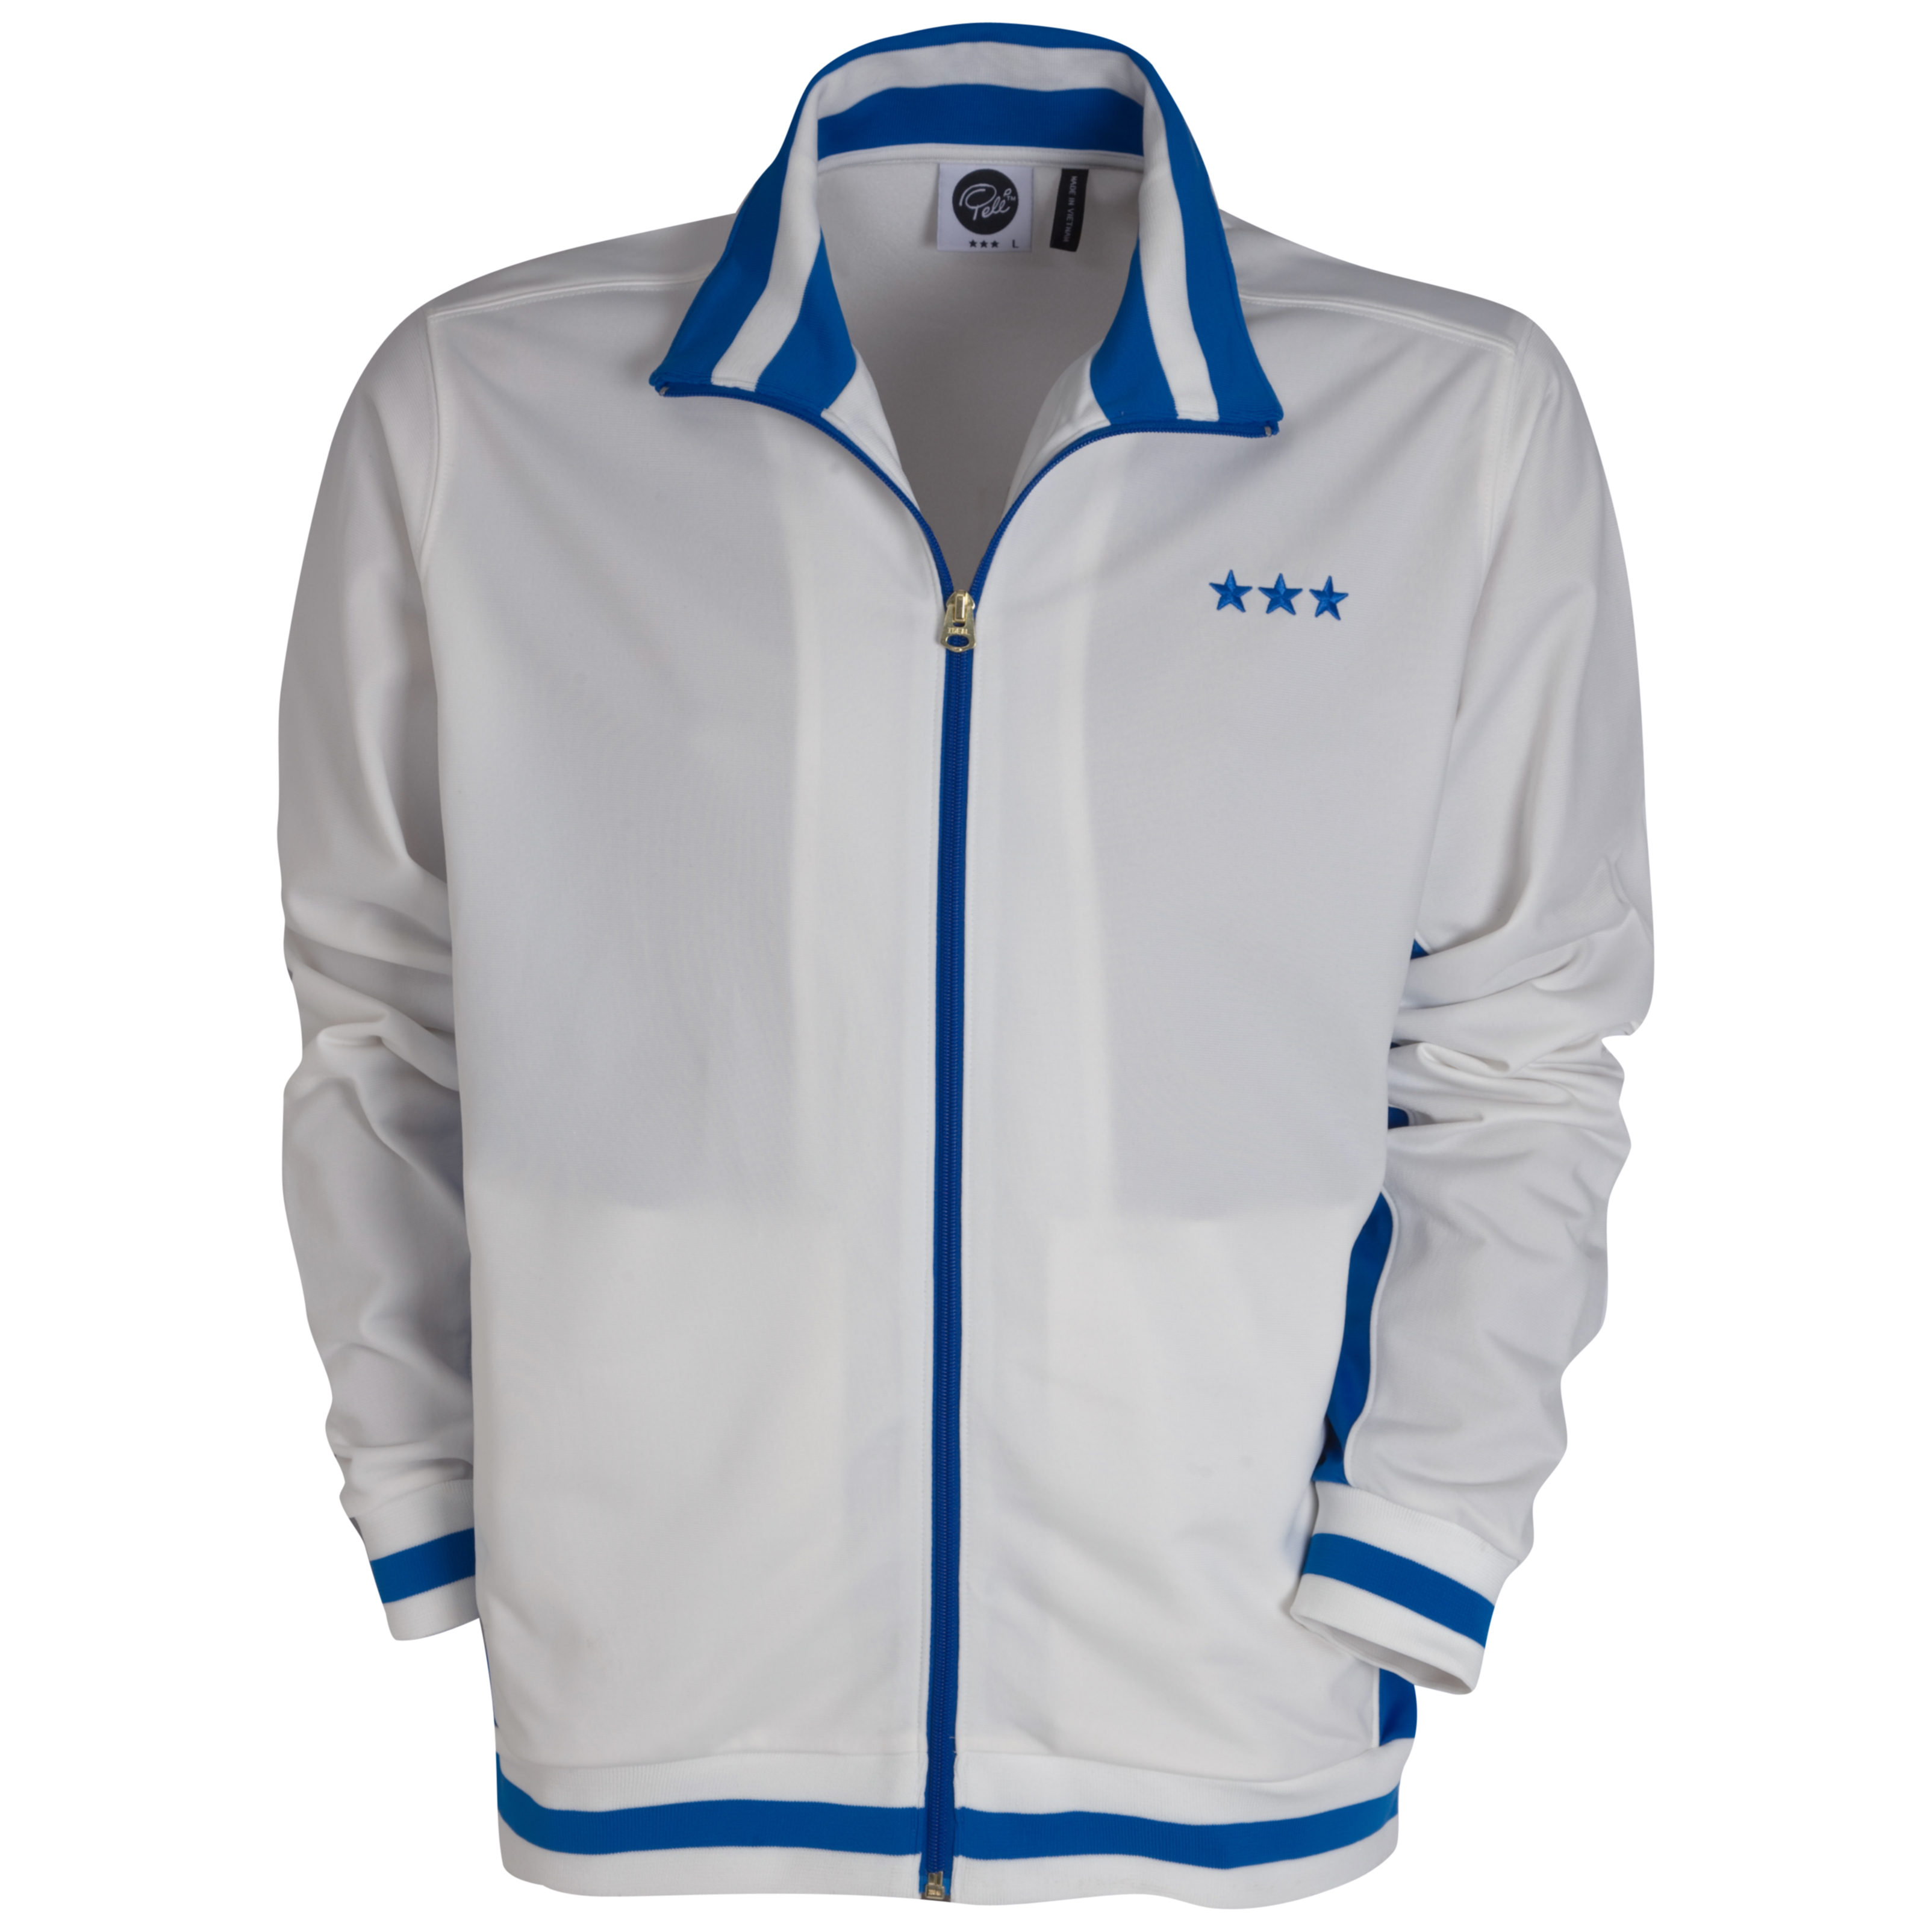 Pele Pele Sports Track Jacket - Snow White/Princess Blue